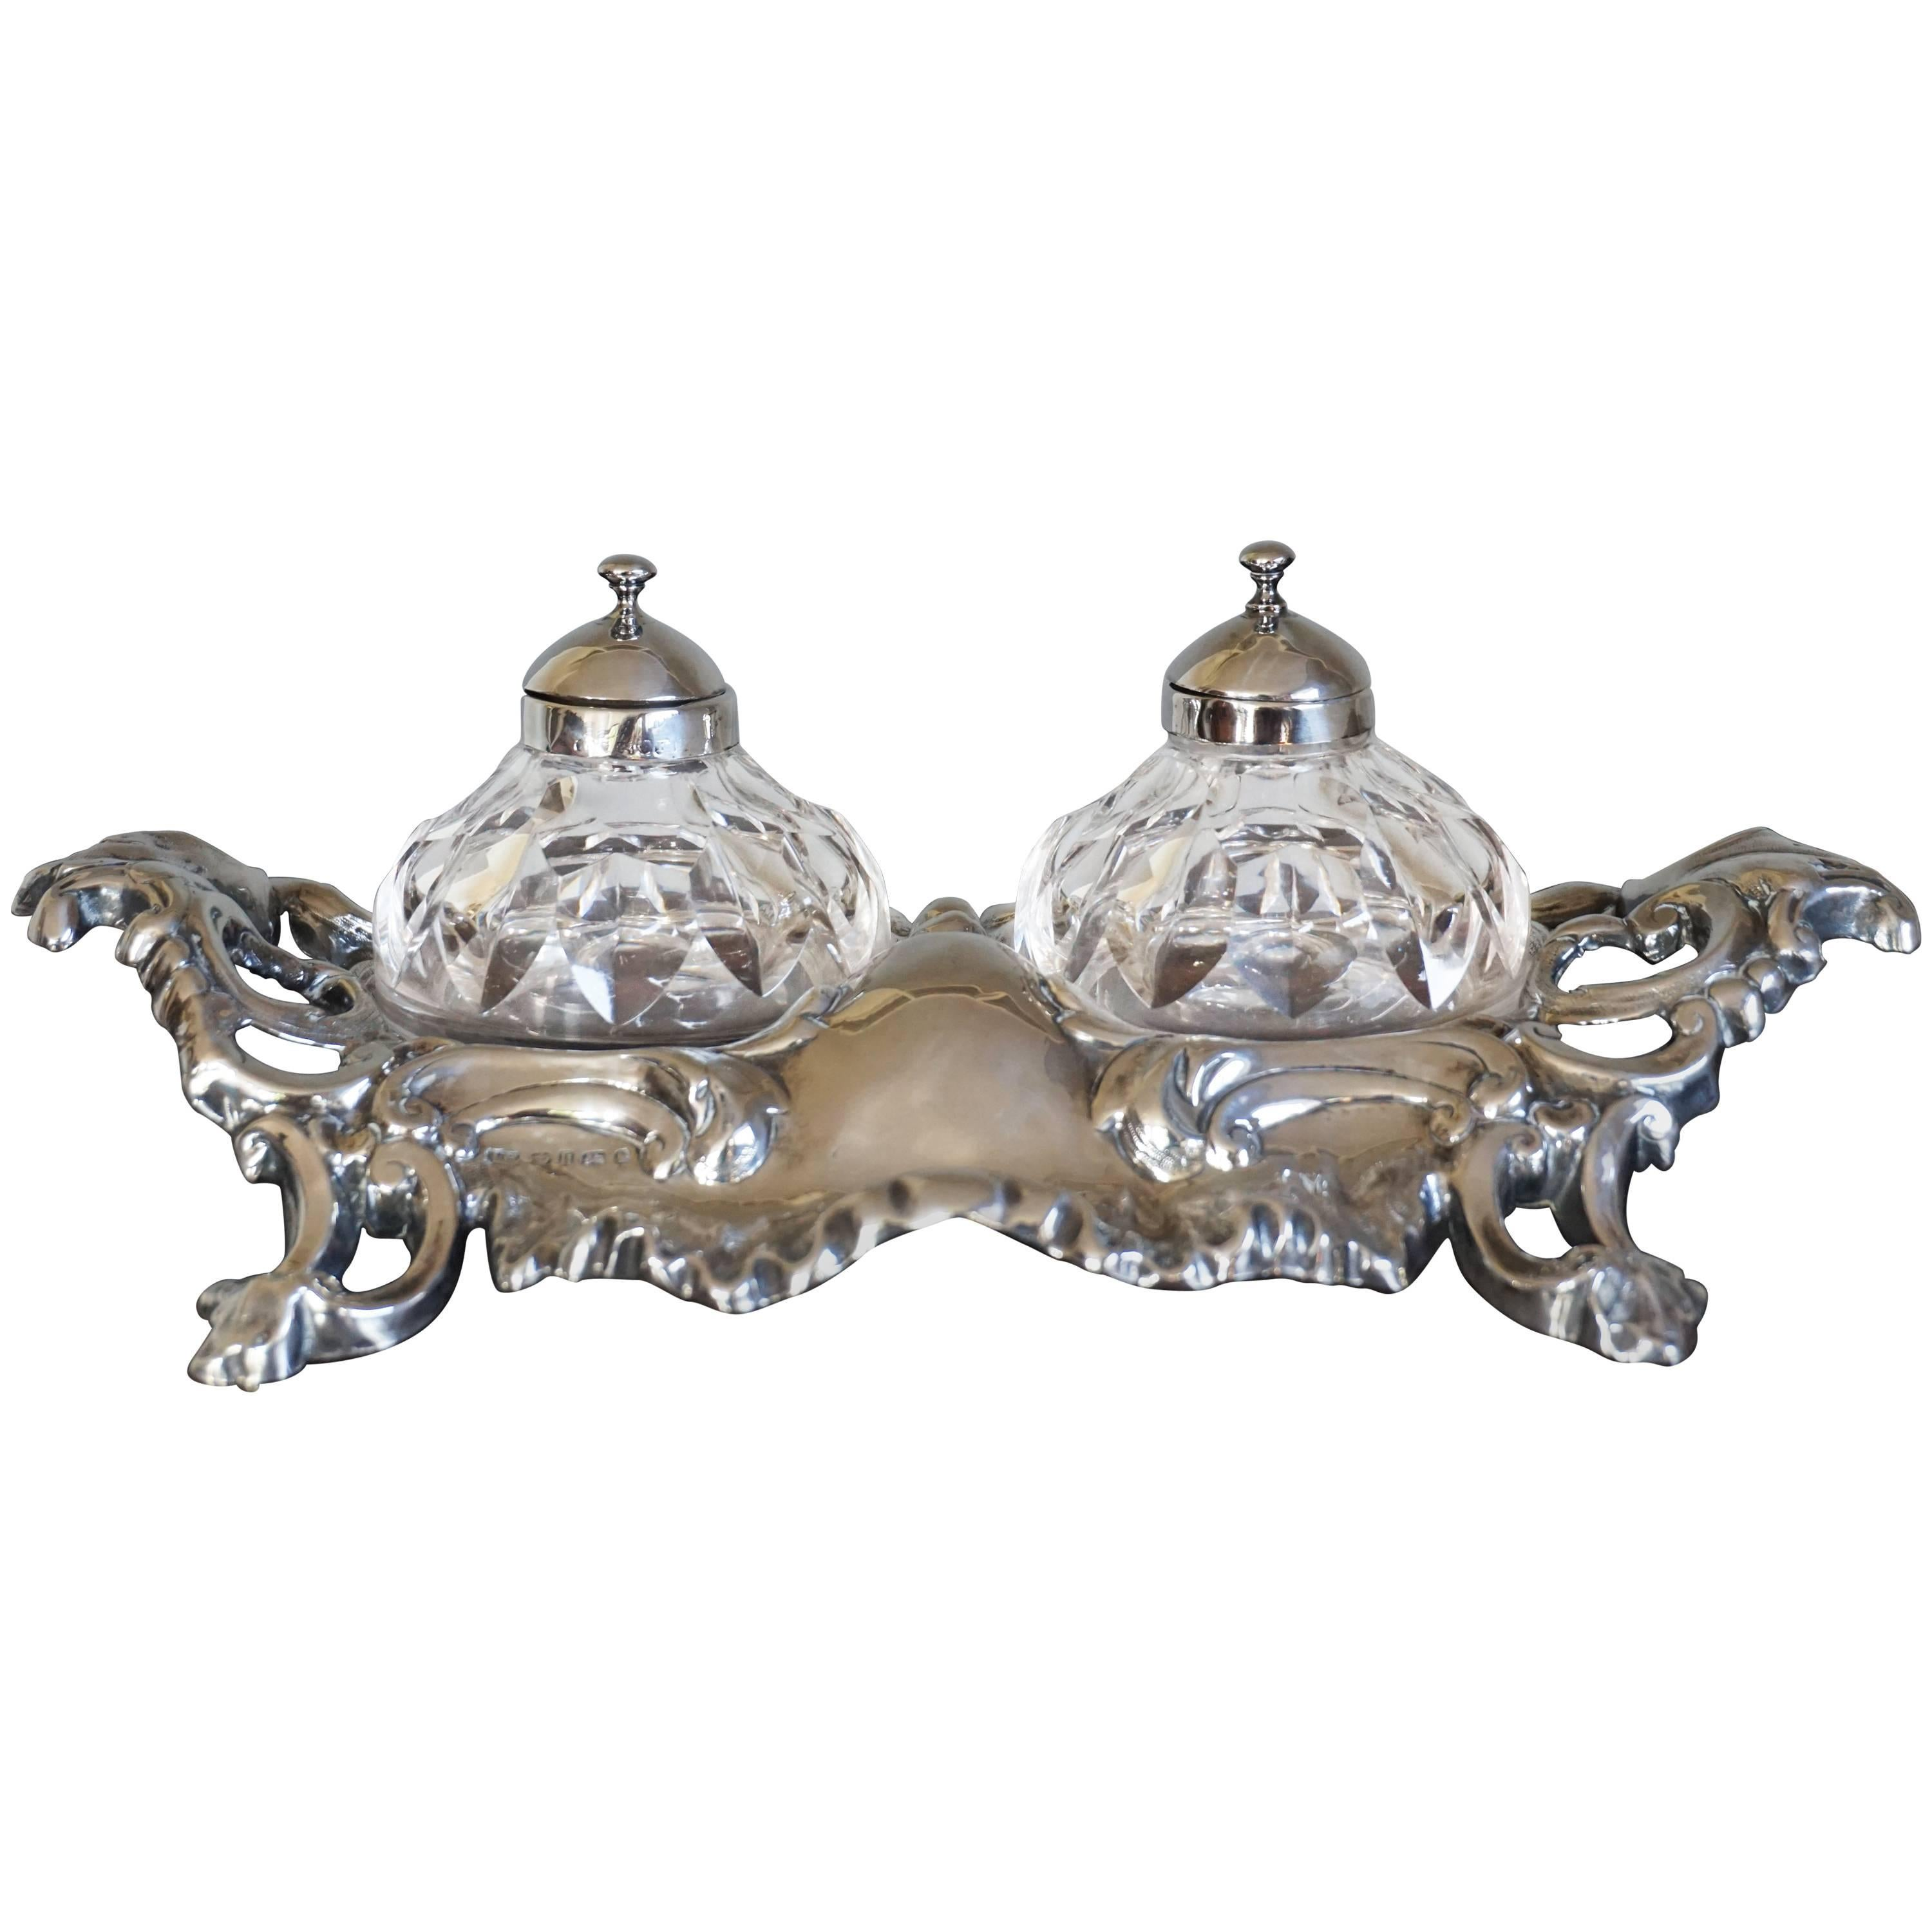 Antique Sterling Silver Rococo Style Inkstand with Crystal Glass Inkwells, 1859